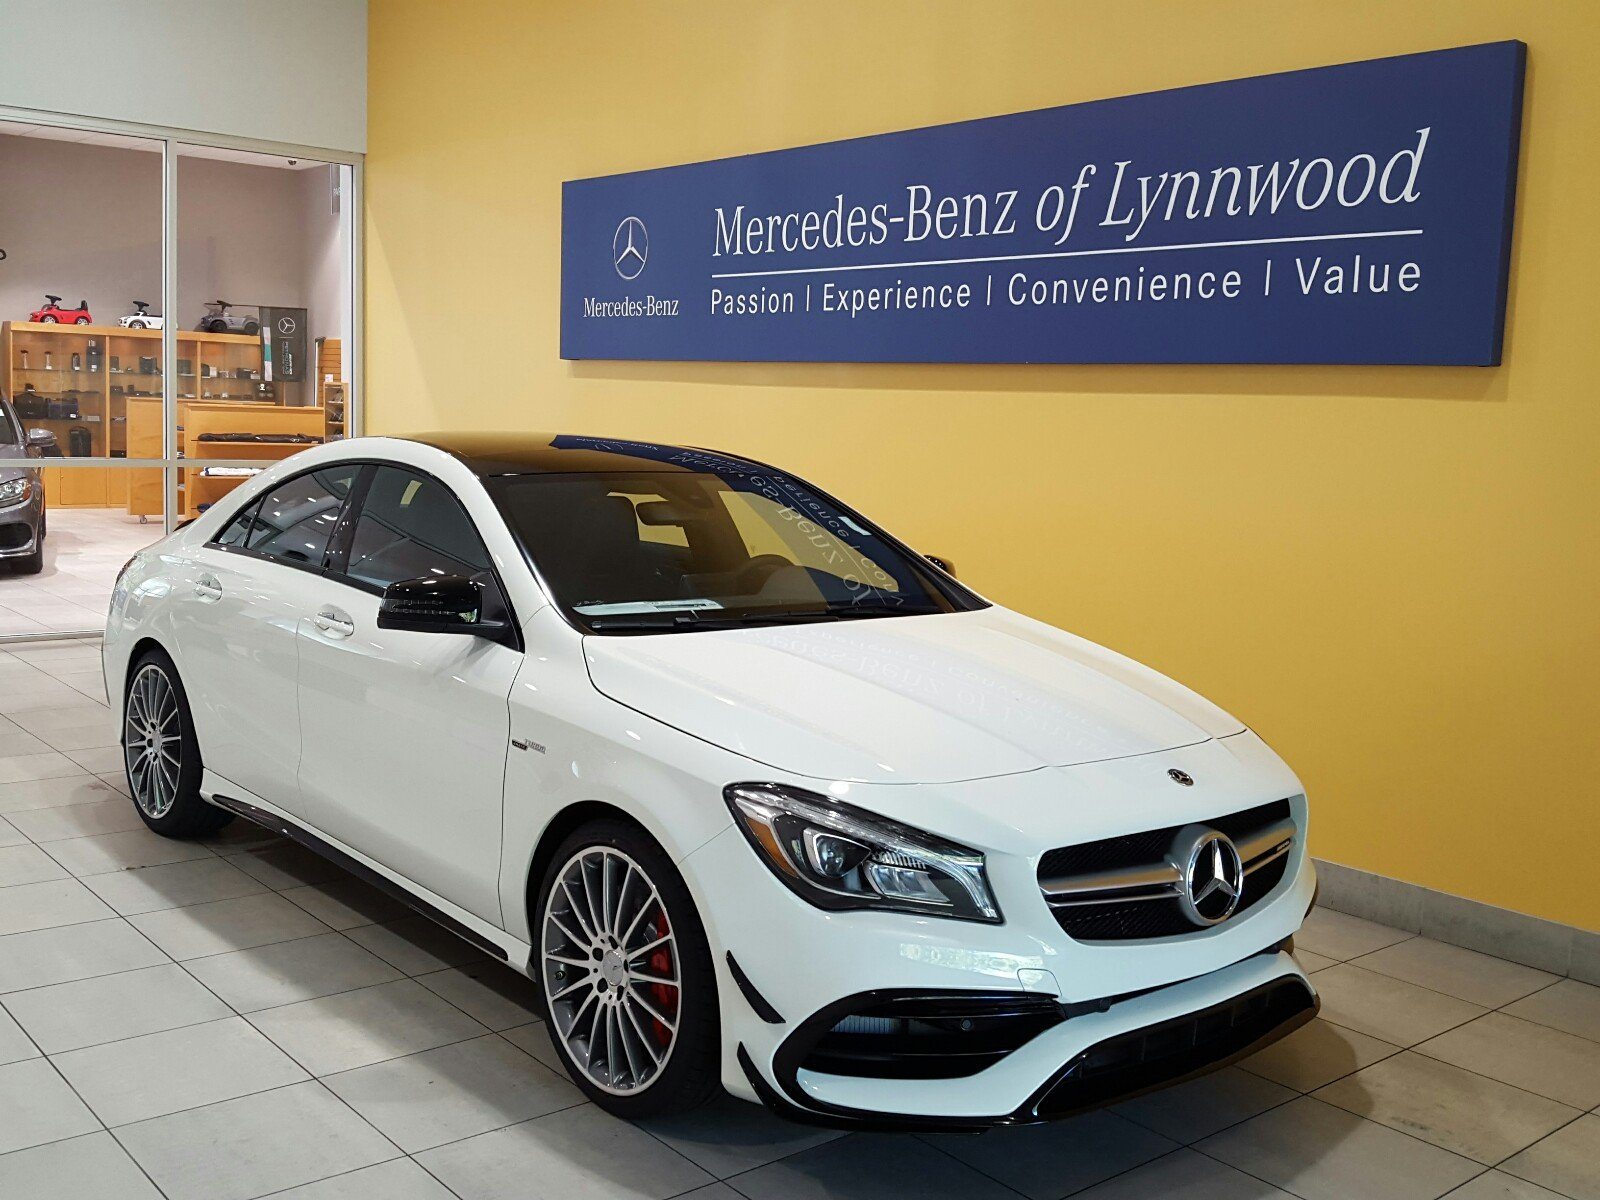 Pre owned 2018 mercedes benz cla amg cla 45 4matic coupe for Mercedes benz financial payment address